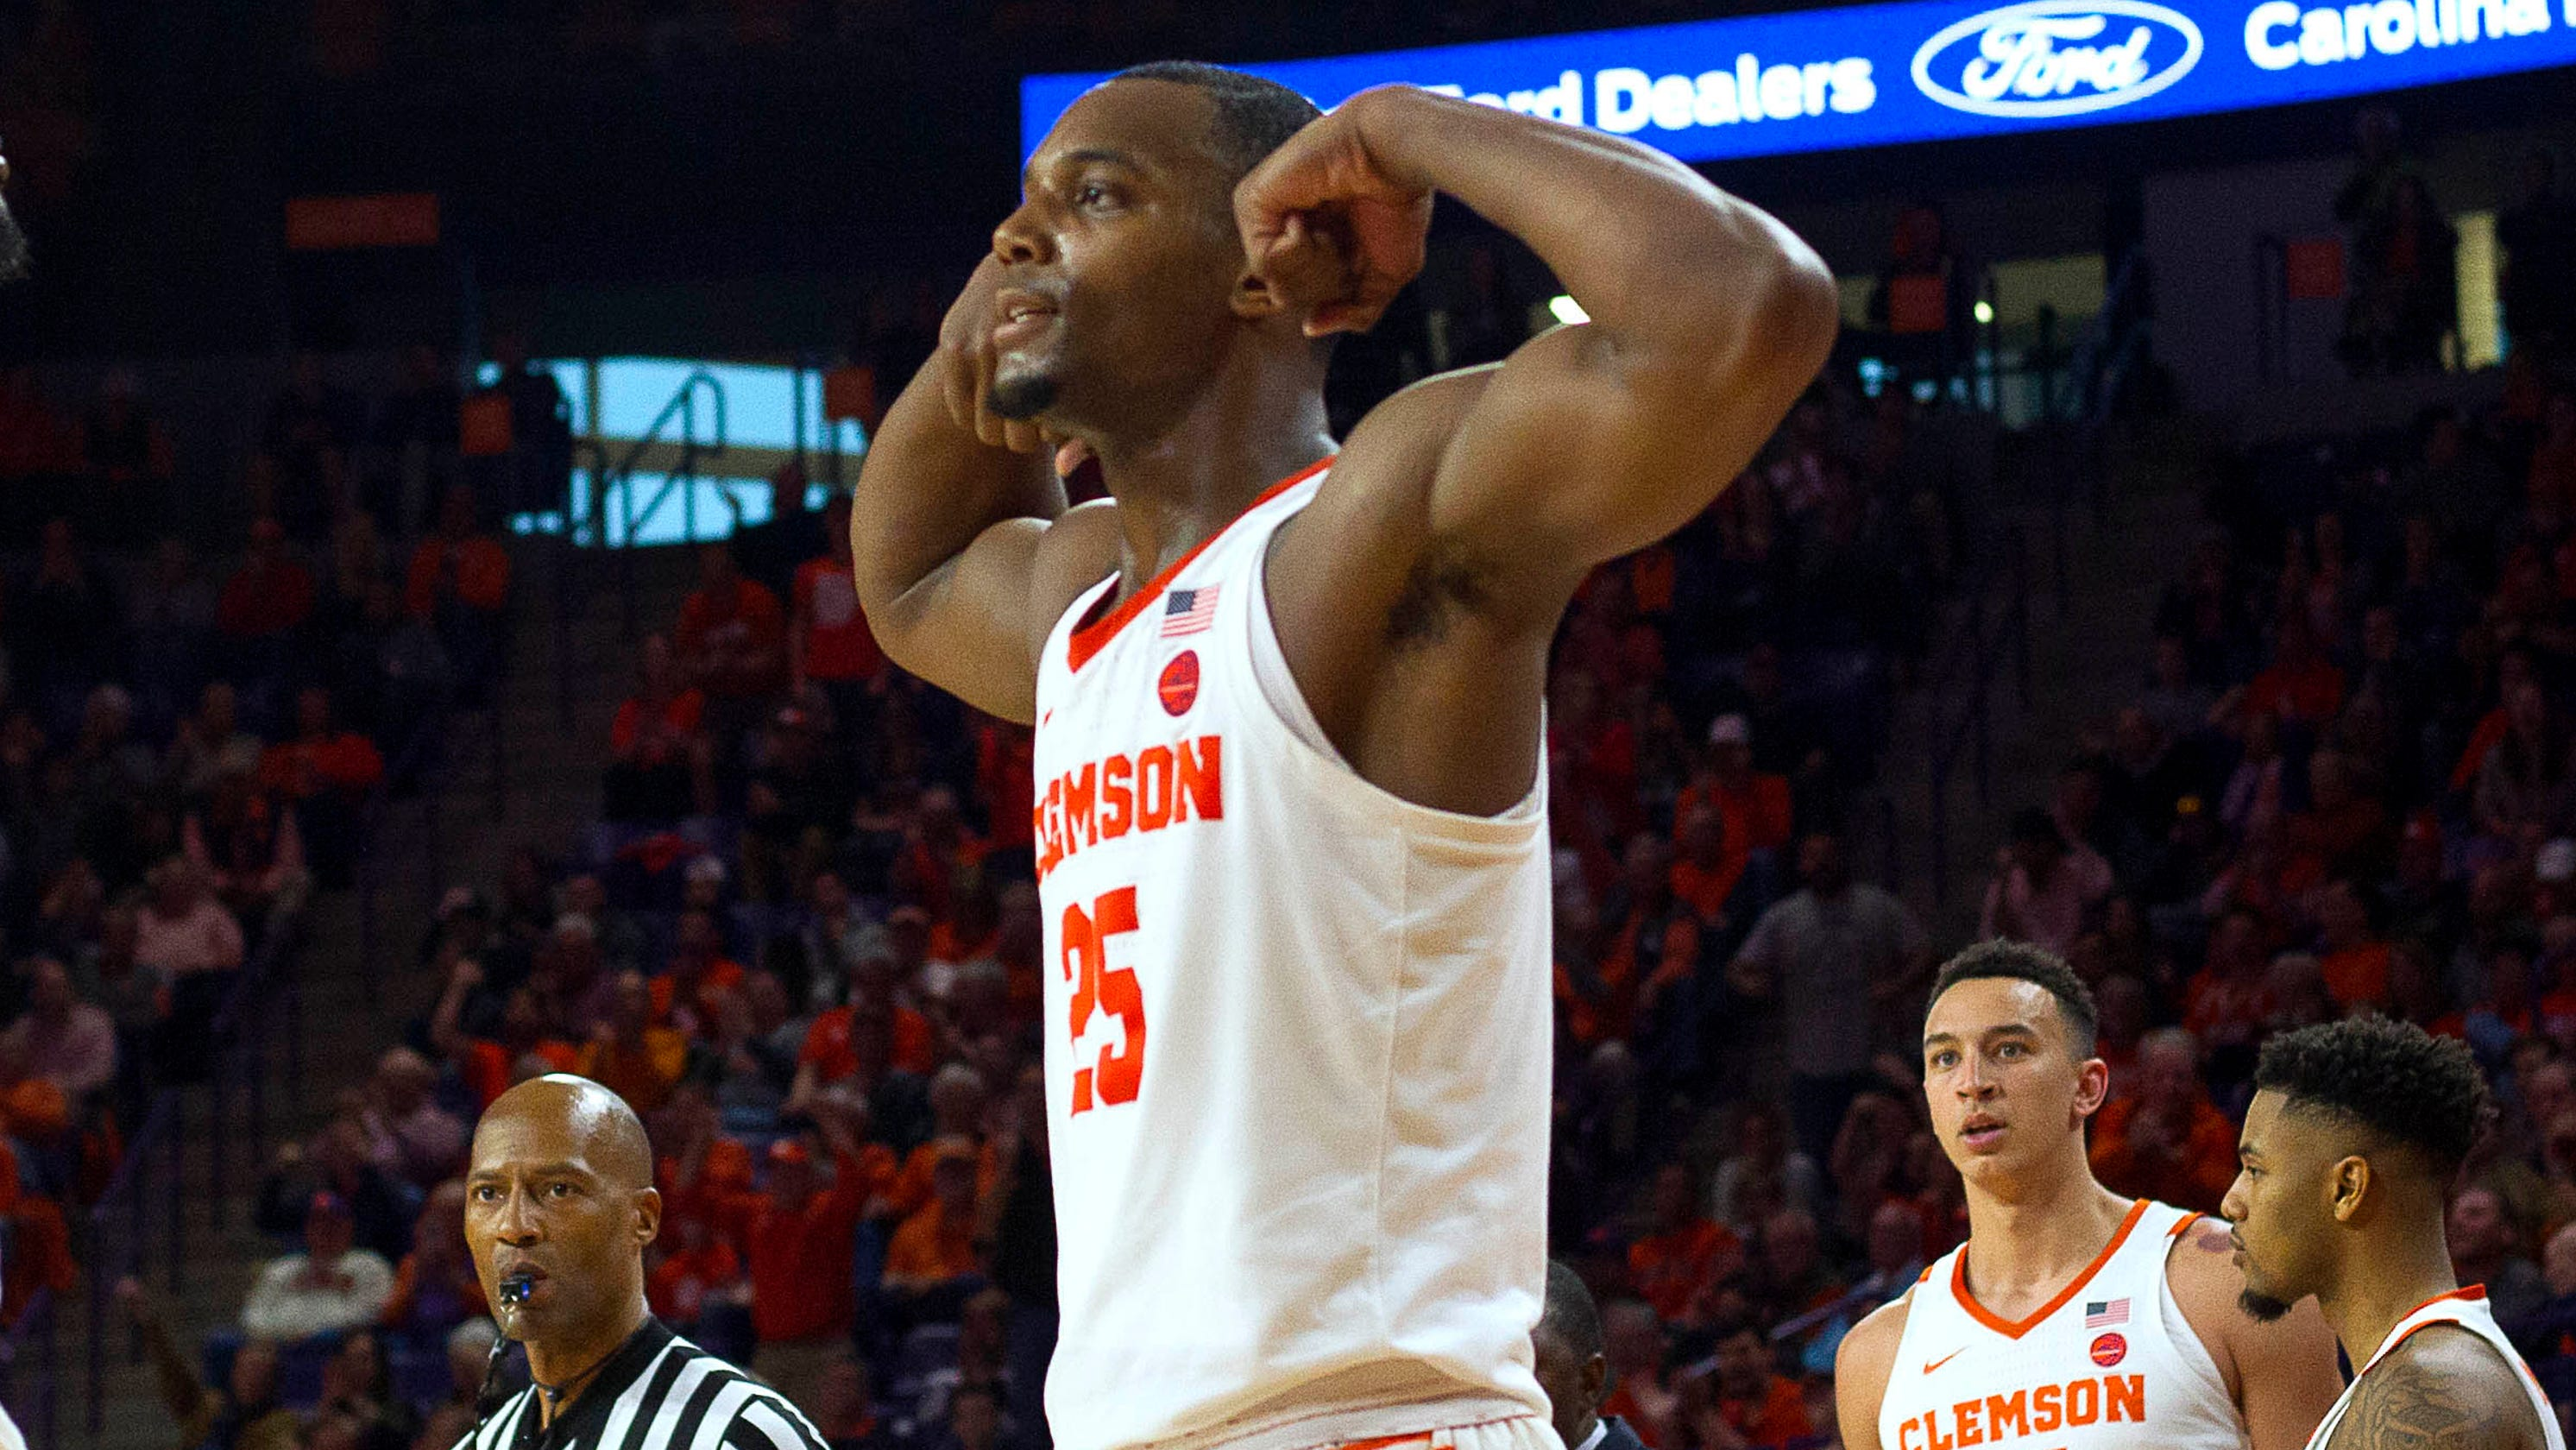 NCAA tournament bubble watch: College basketball winners, losers